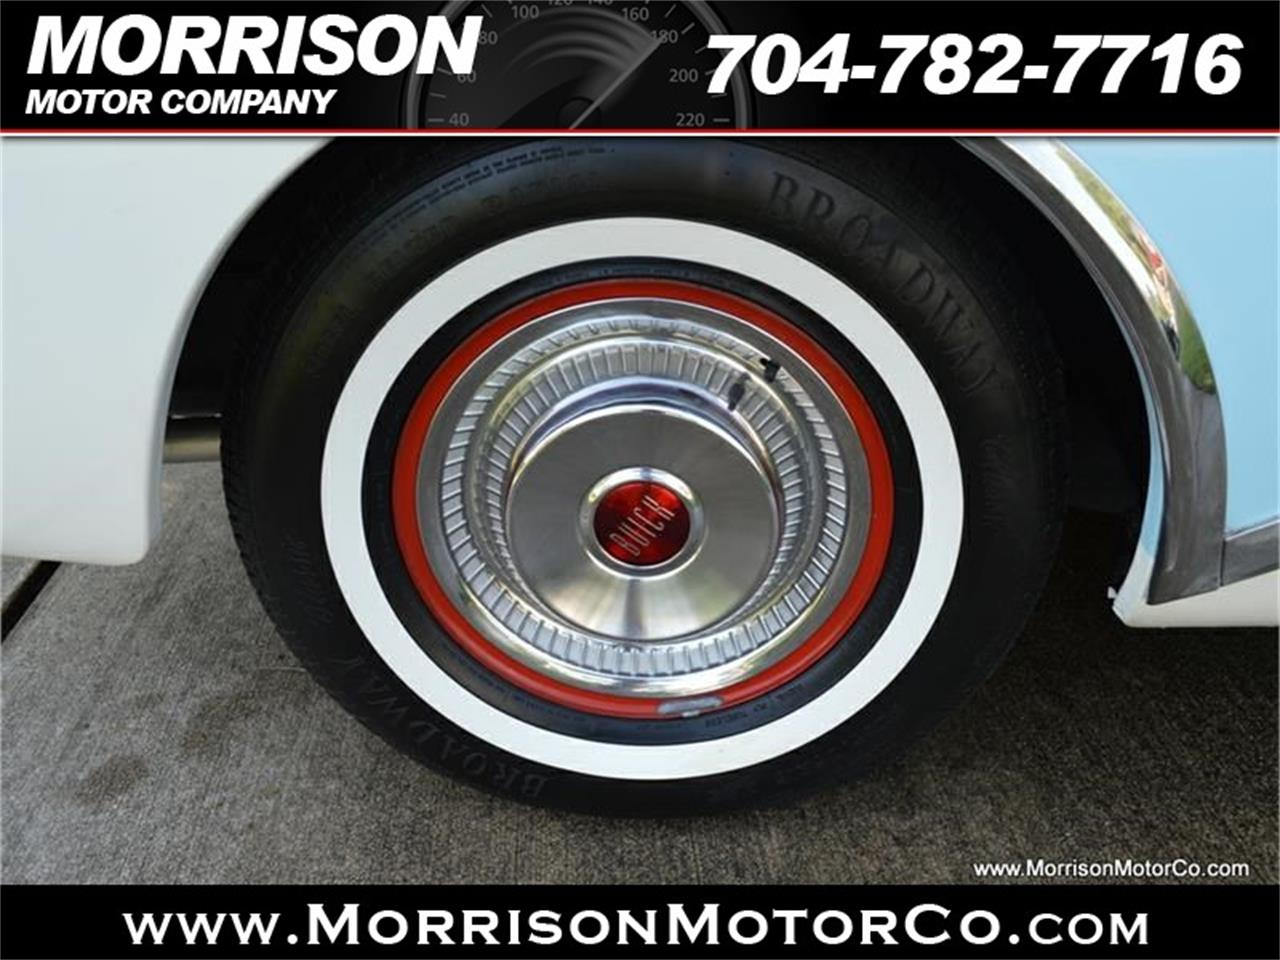 Large Picture of 1956 Buick Special Riviera located in North Carolina Offered by Morrison Motor Company - M8P8